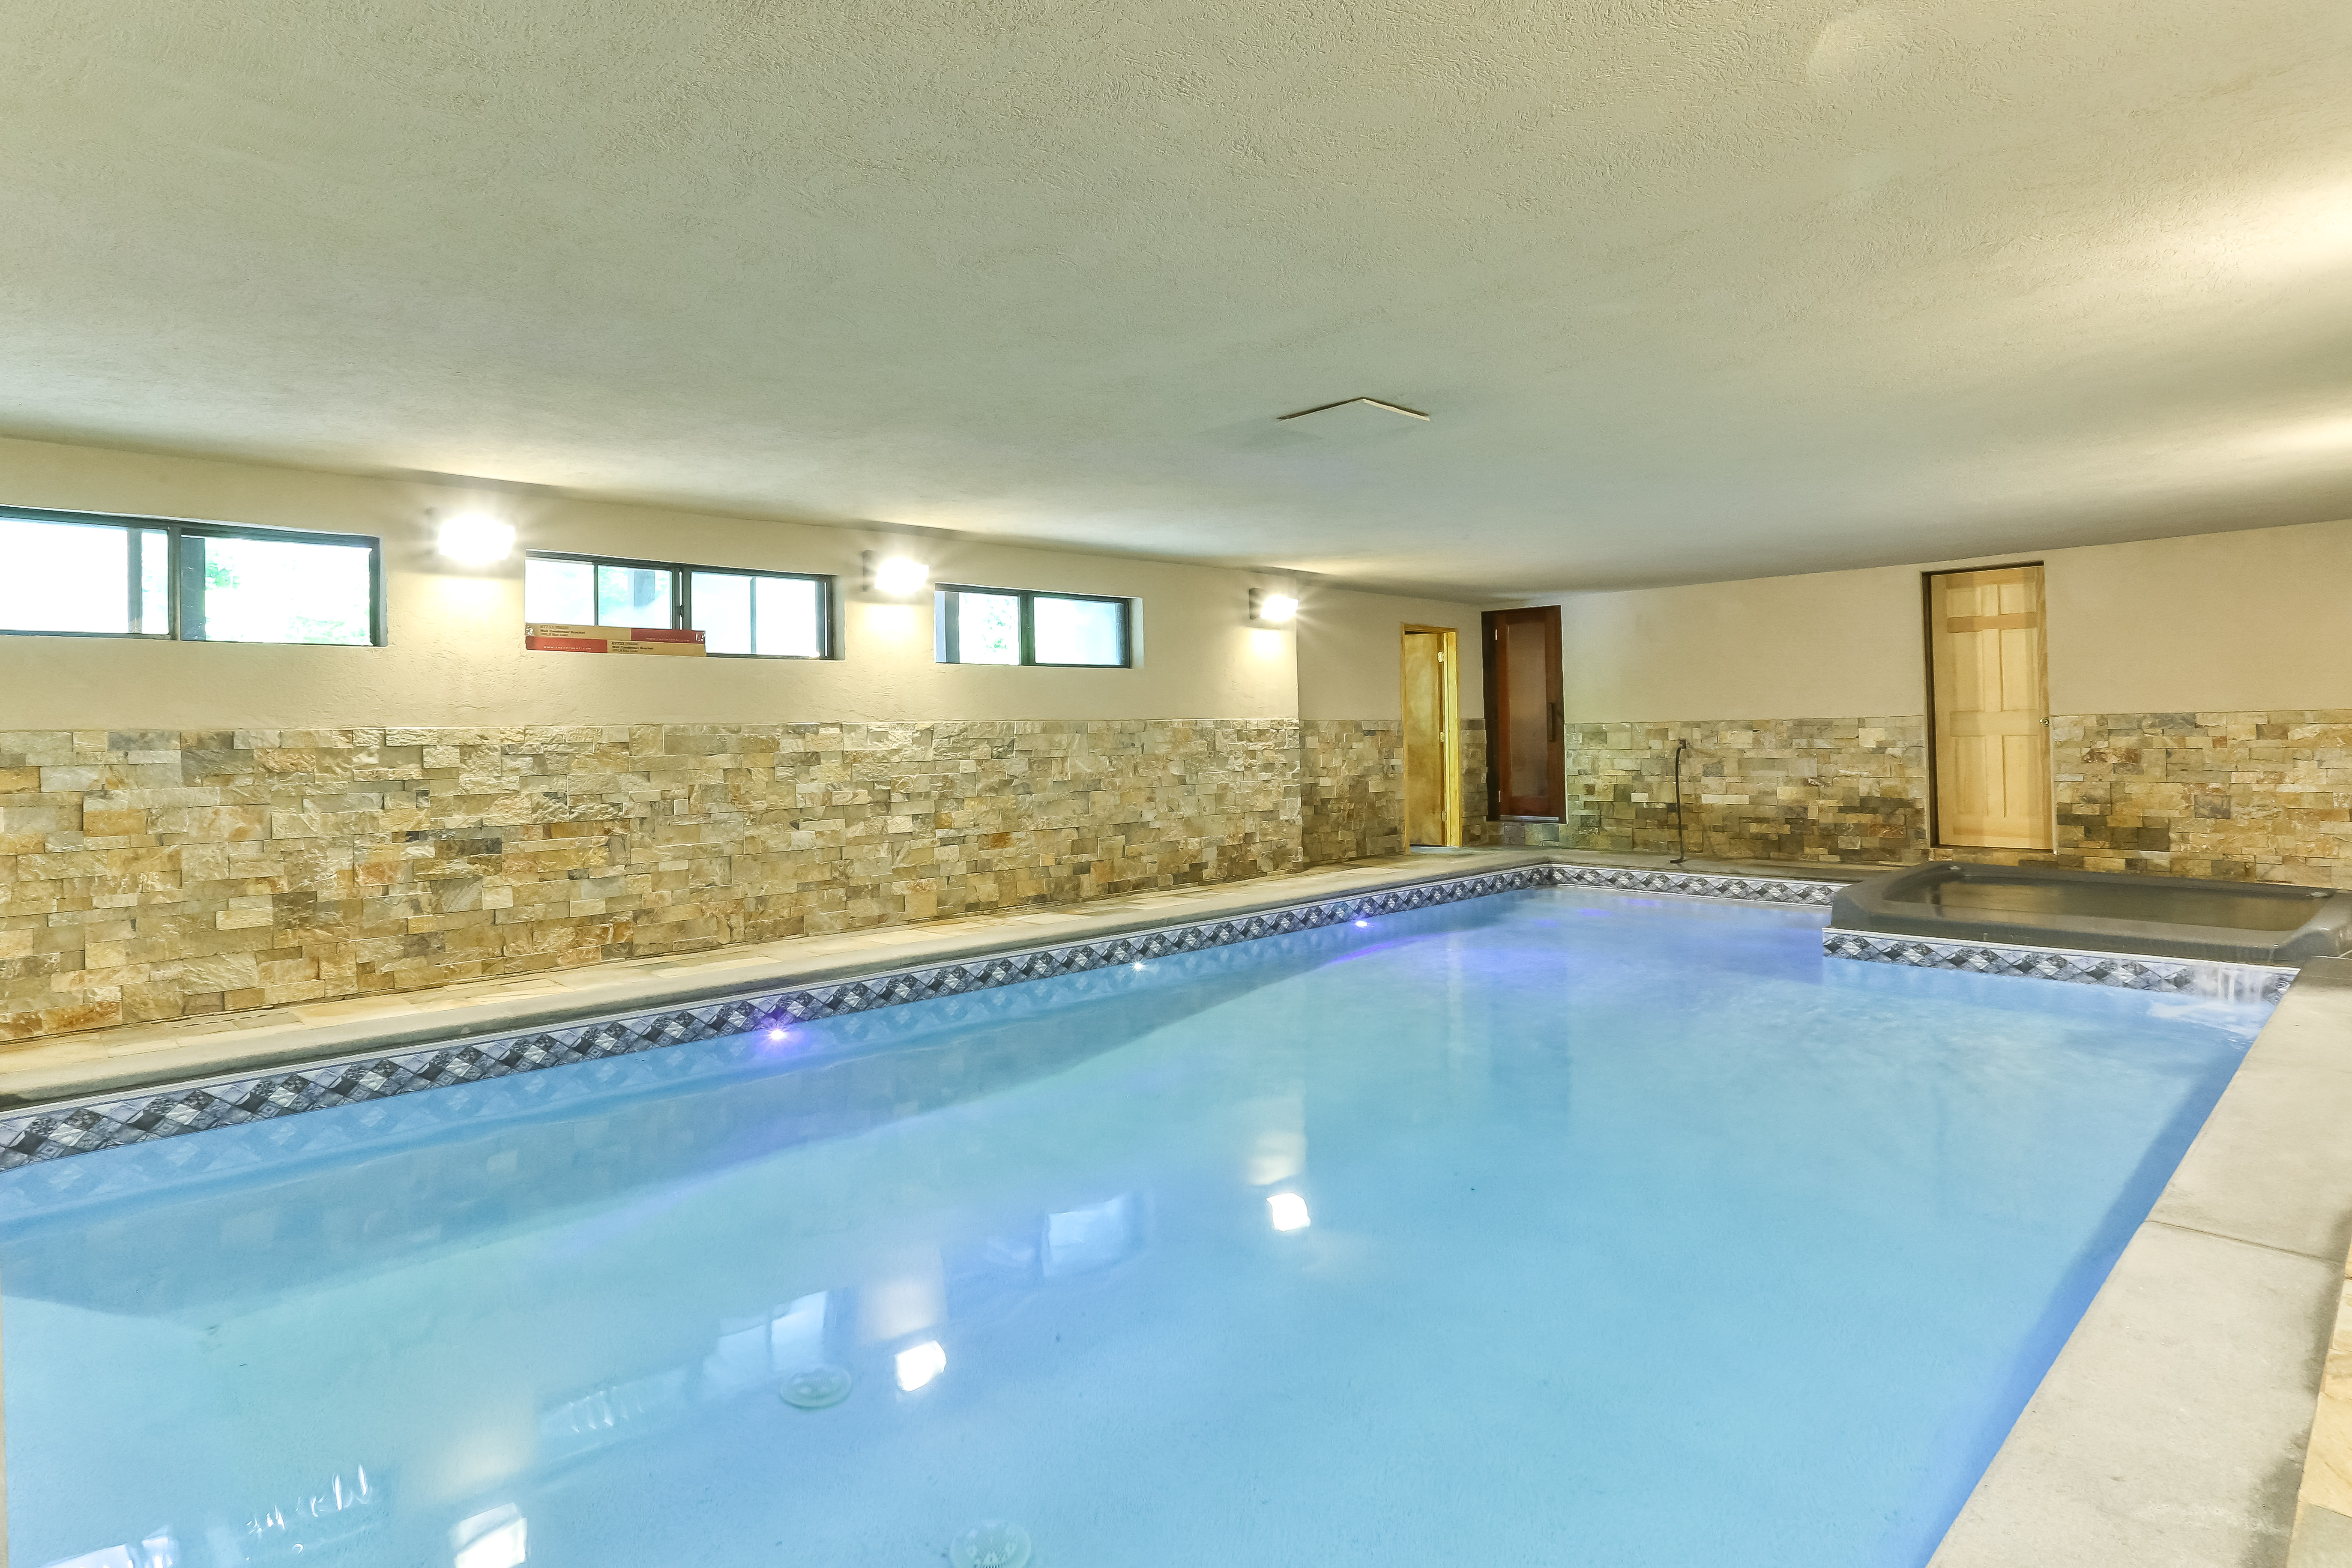 New Indoor Pool Hot Tub In Catskills Walkto Hunter Houses For Rent In Hunter New York United States